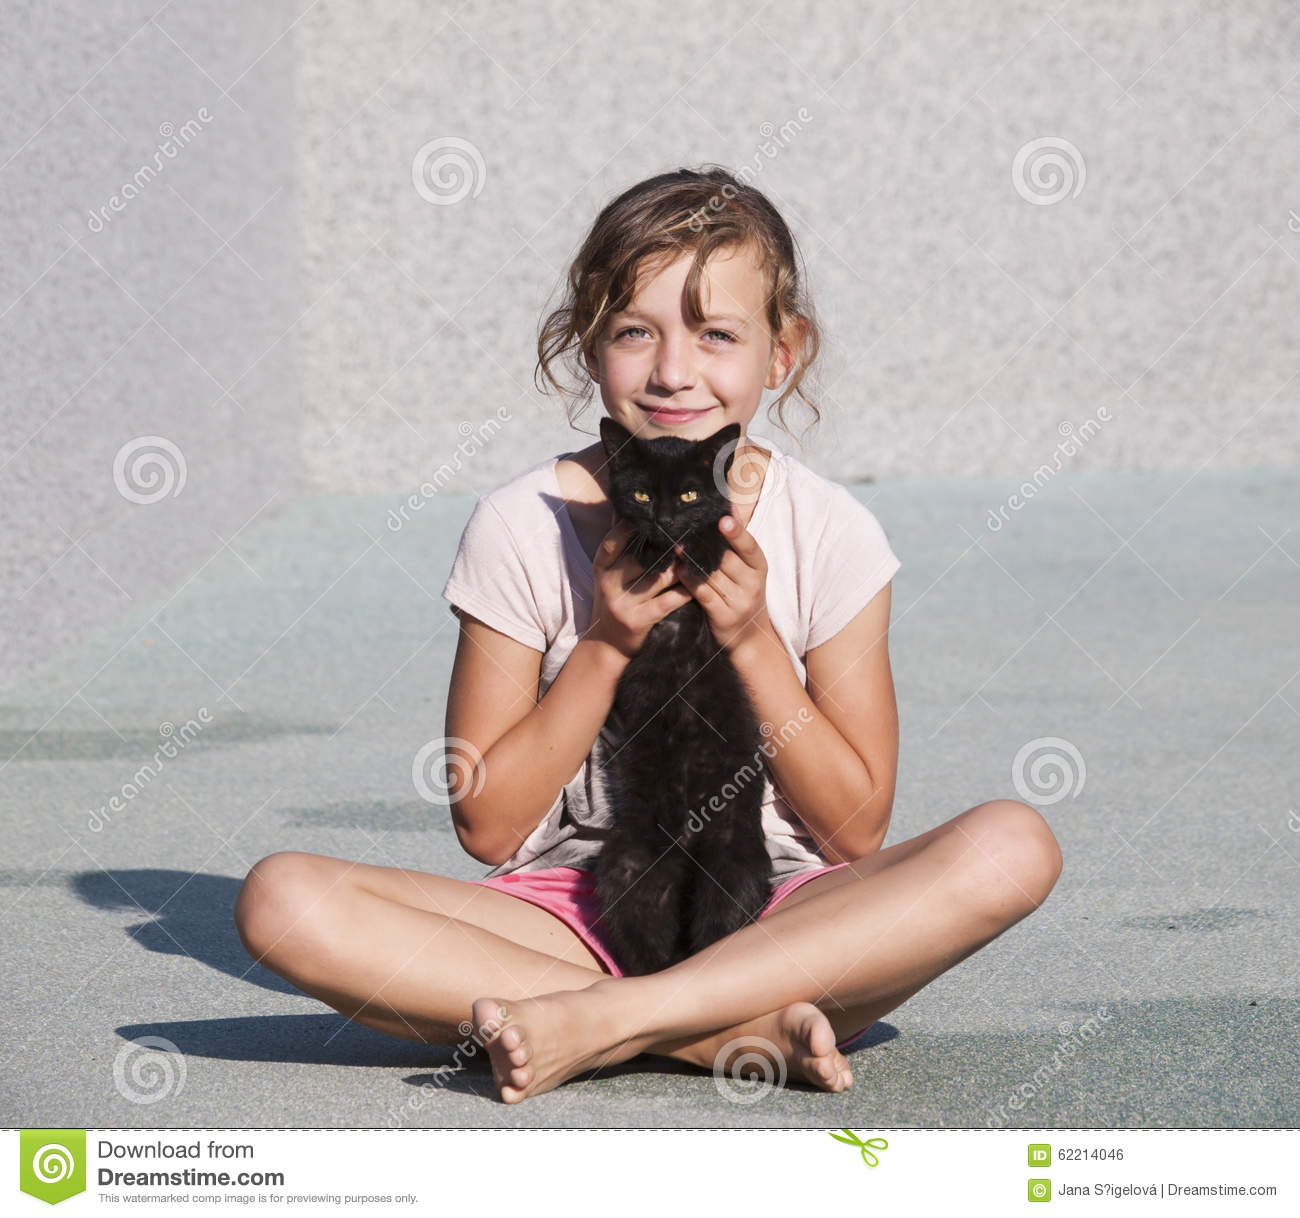 Jana Only Sweet Girls: Young Girl Caress With Kitten Stock Photo